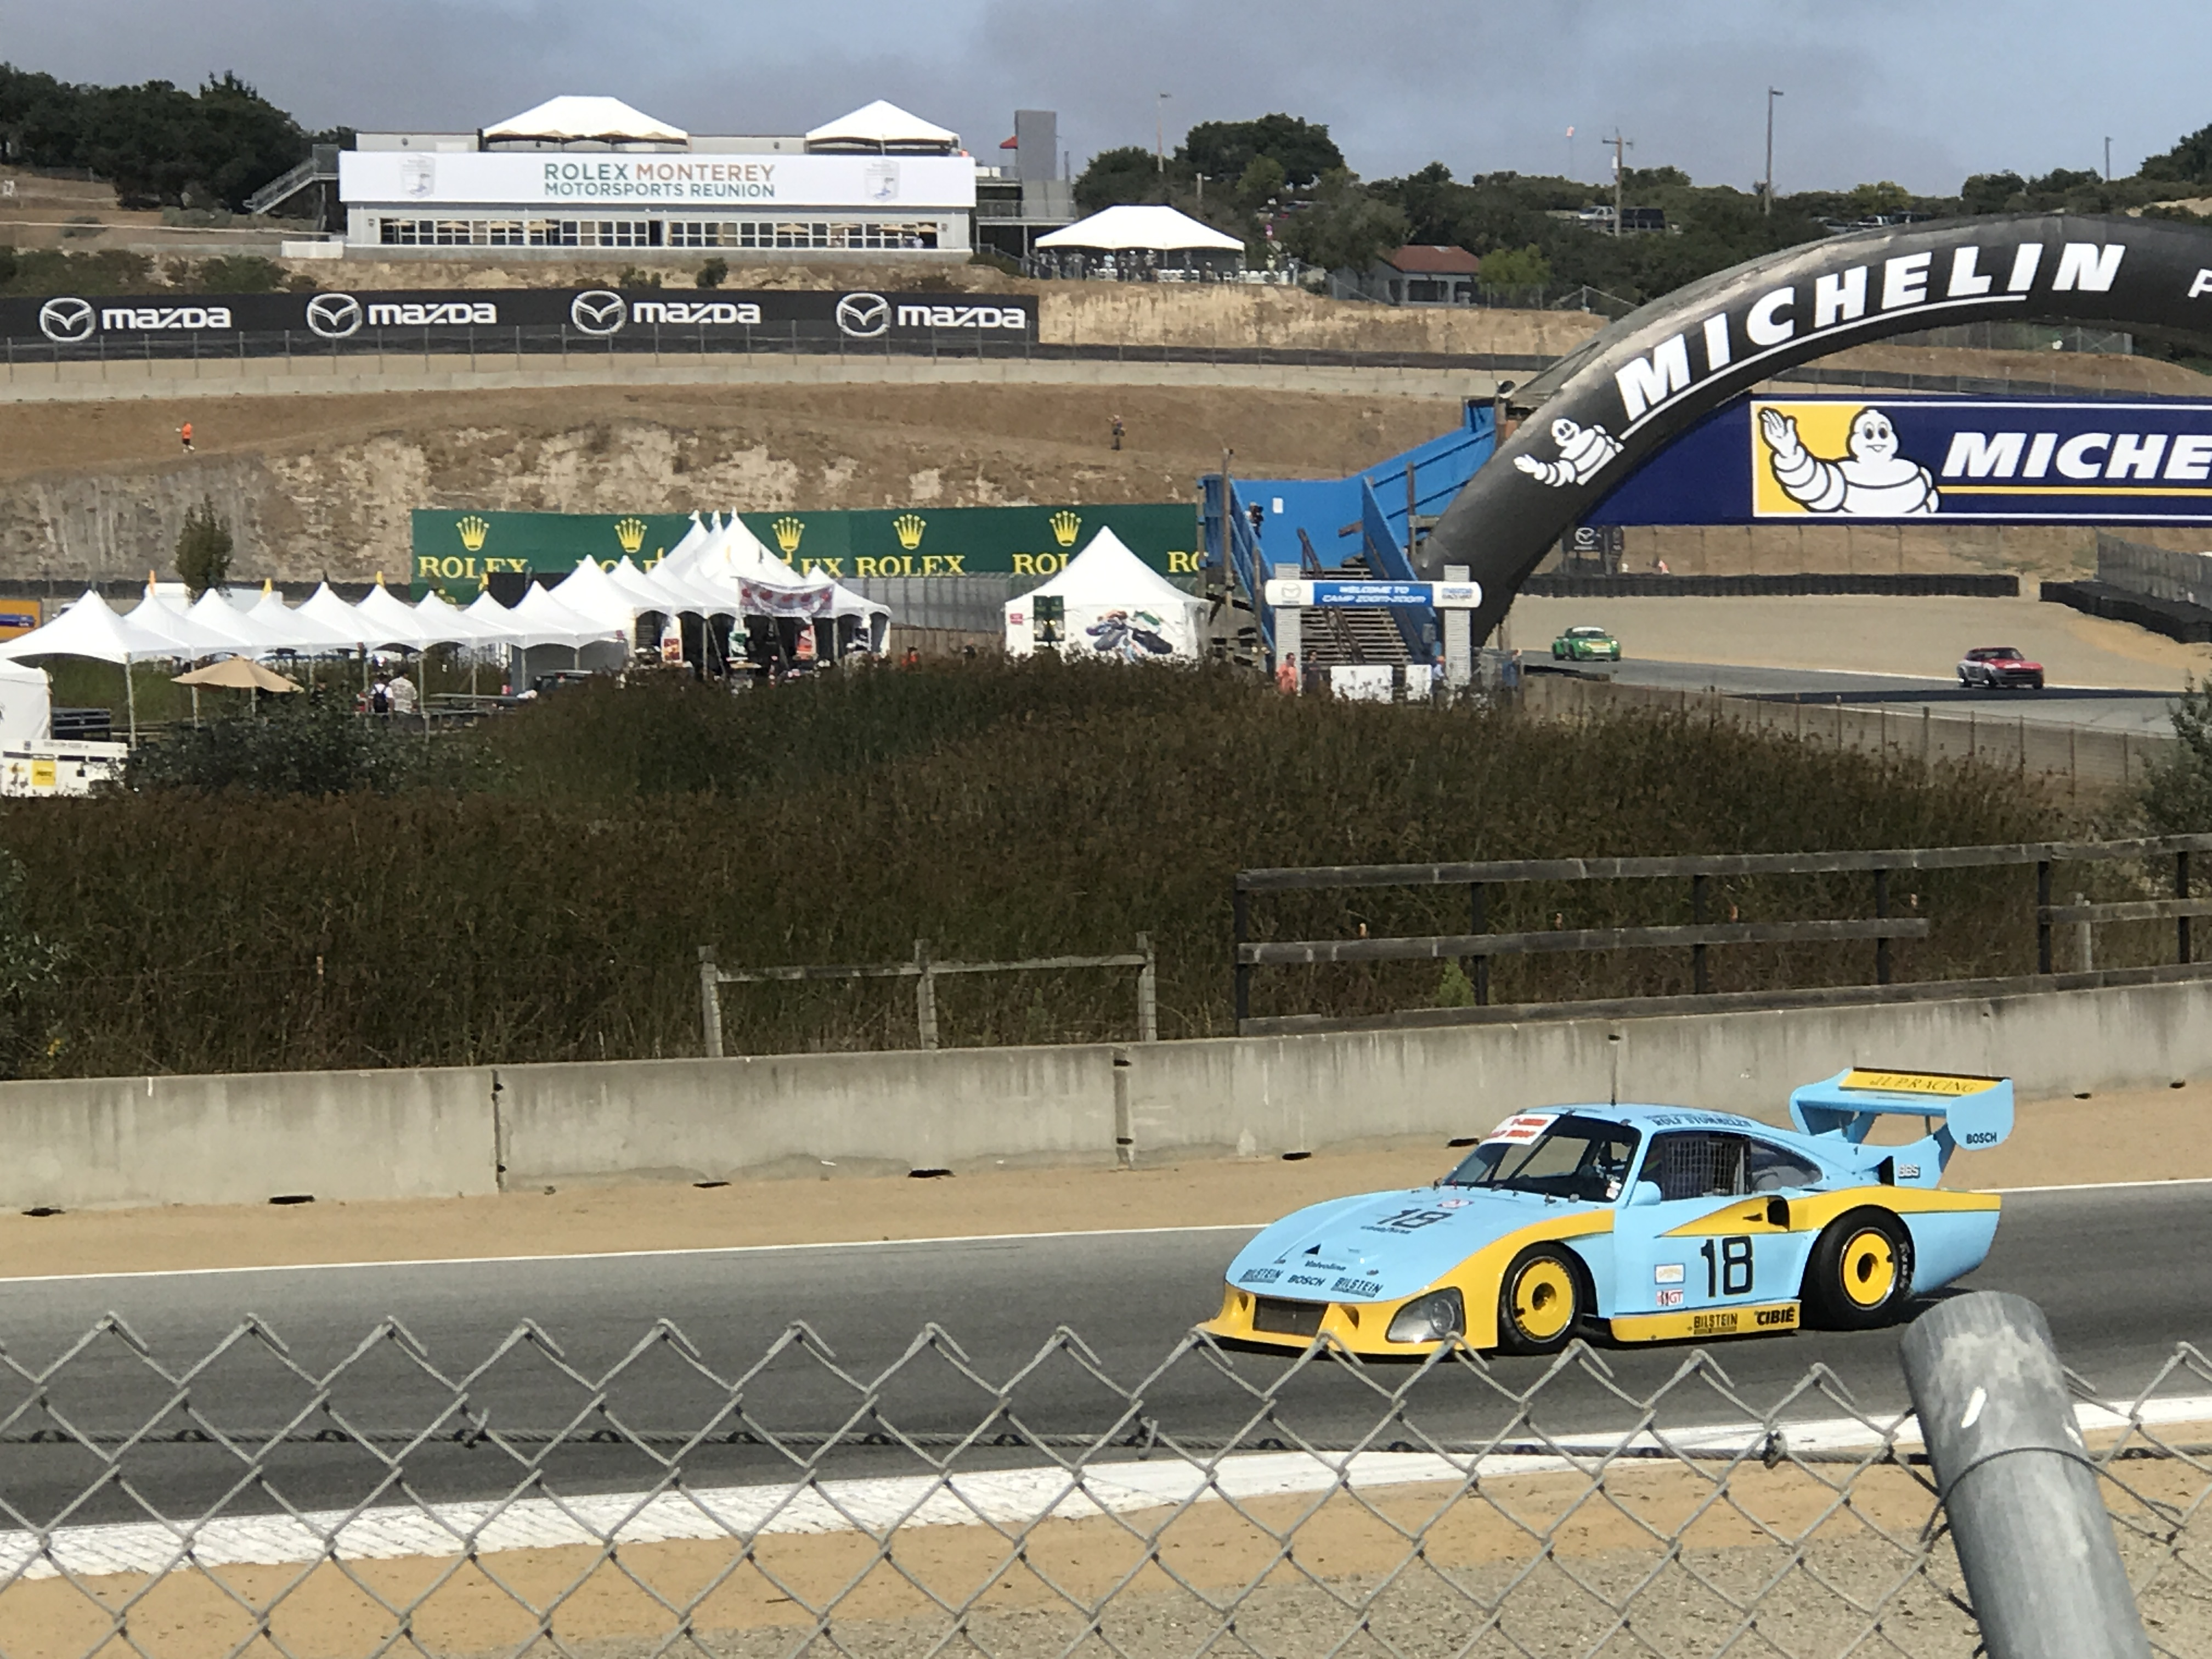 FRIDAY MORNING AT THE 2017 ROLEX MONTEREY MOTORSPORTS REUNION – THE ...